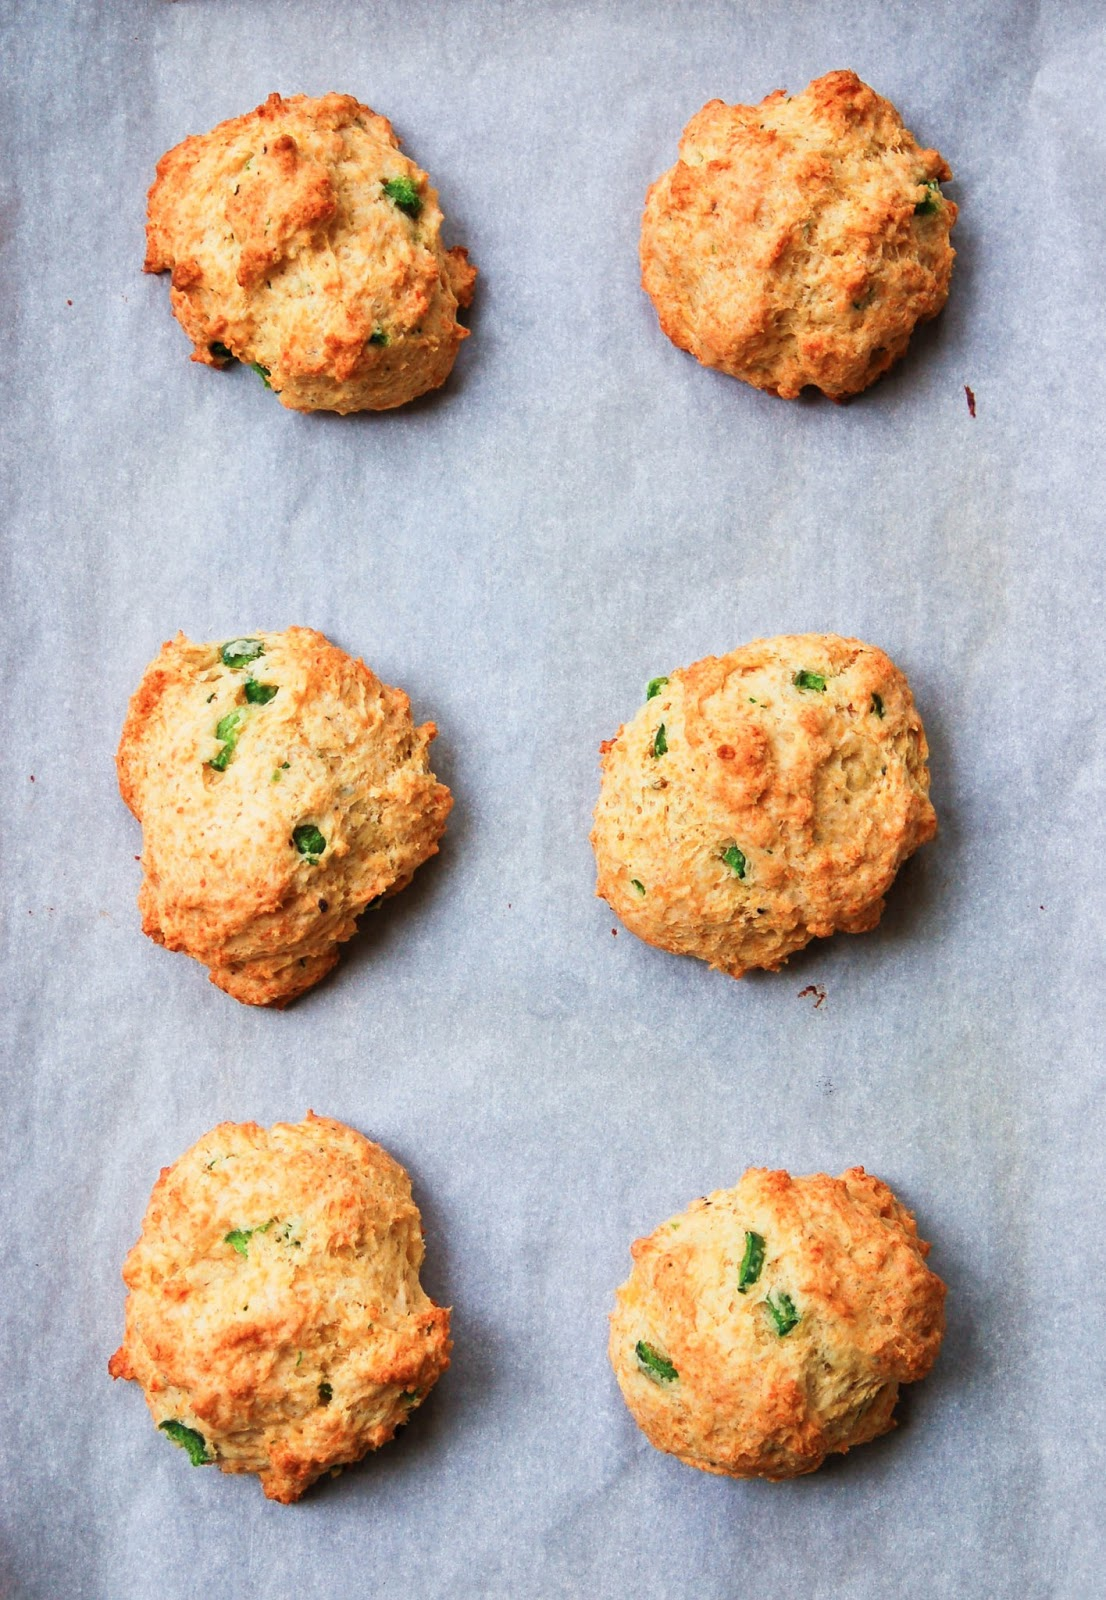 Cheddar-Jalapeno Biscuits